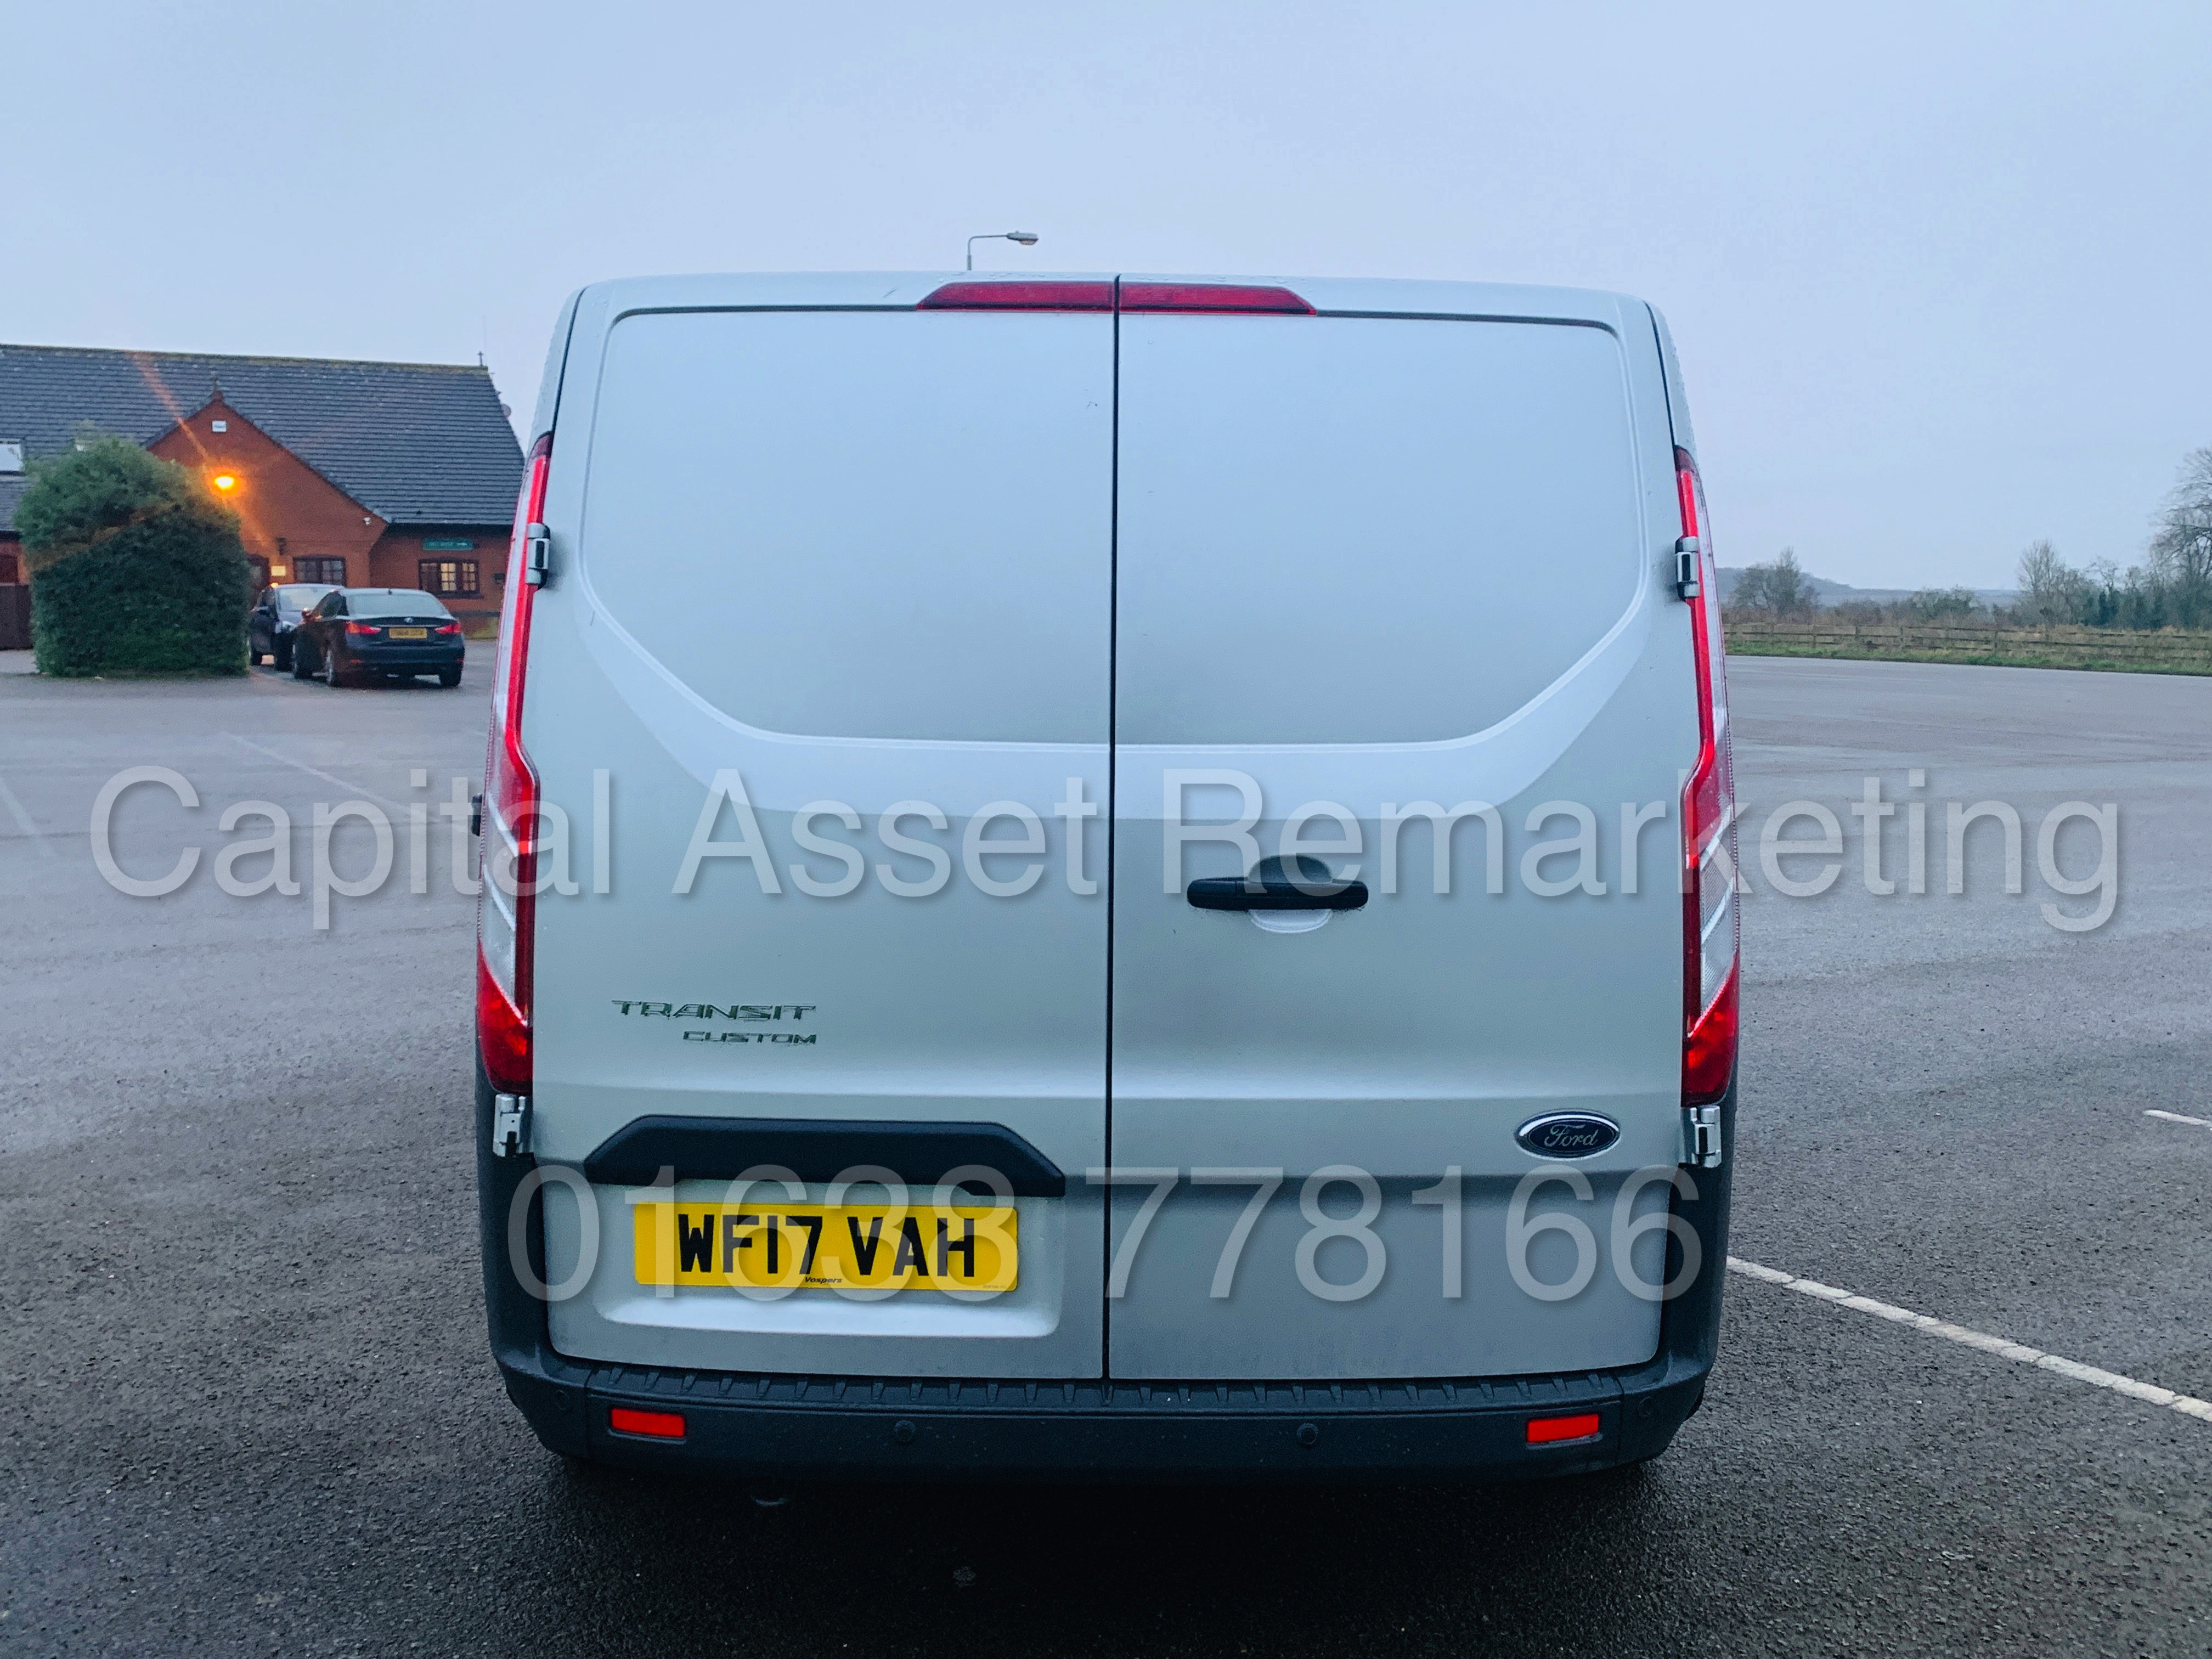 (On Sale) FORD TRANSIT *TREND* 290 SWB (2017 - EURO 6 / AD-BLUE) '2.0 TDCI - 130 BHP - 6 SPEED' - Image 10 of 41